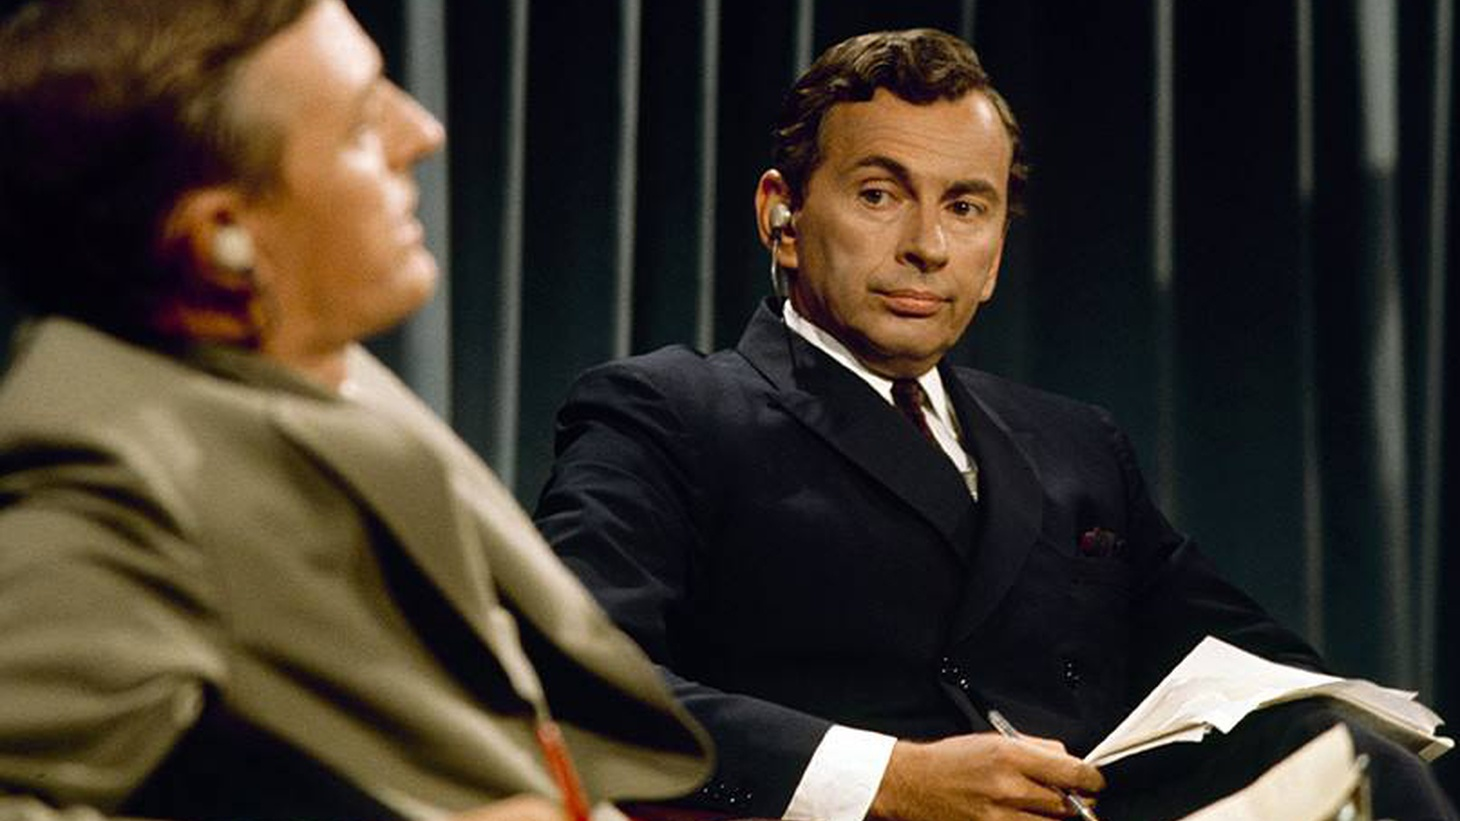 Best of Enemies is a must-view film for our media-besotted age, a serious film about a serious failure to communicate ideas.